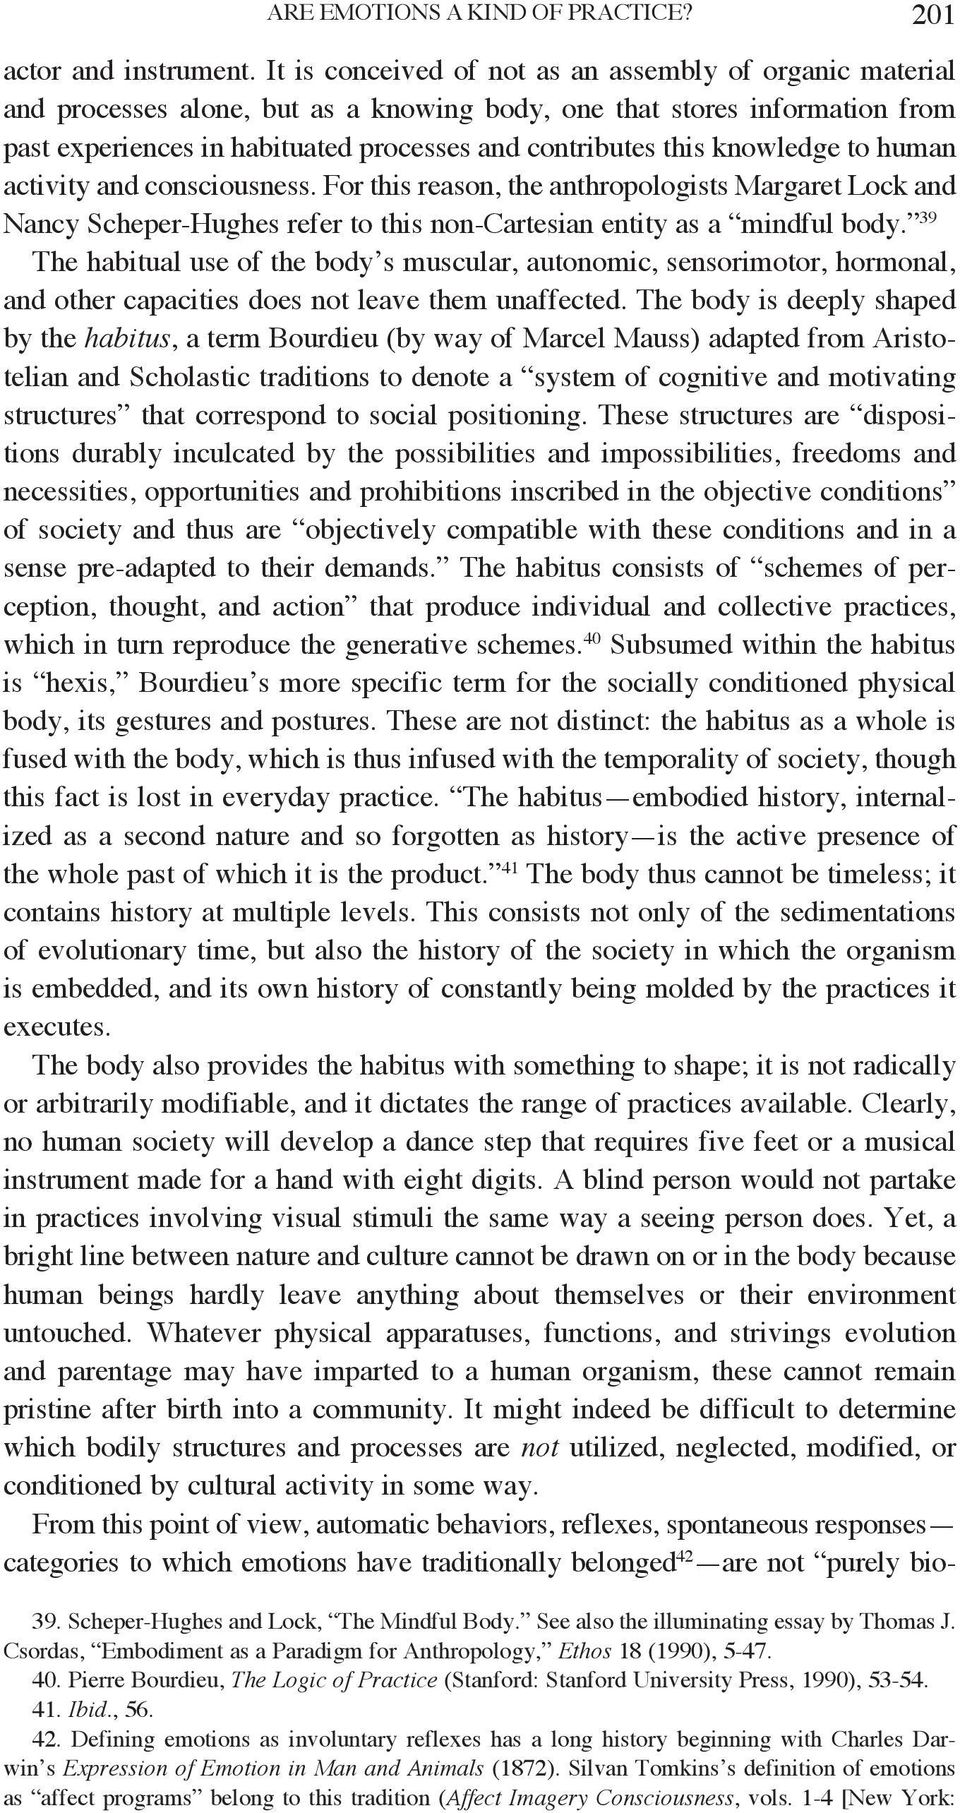 knowledge to human activity and consciousness. For this reason, the anthropologists Margaret Lock and Nancy Scheper-Hughes refer to this non-cartesian entity as a mindful body.